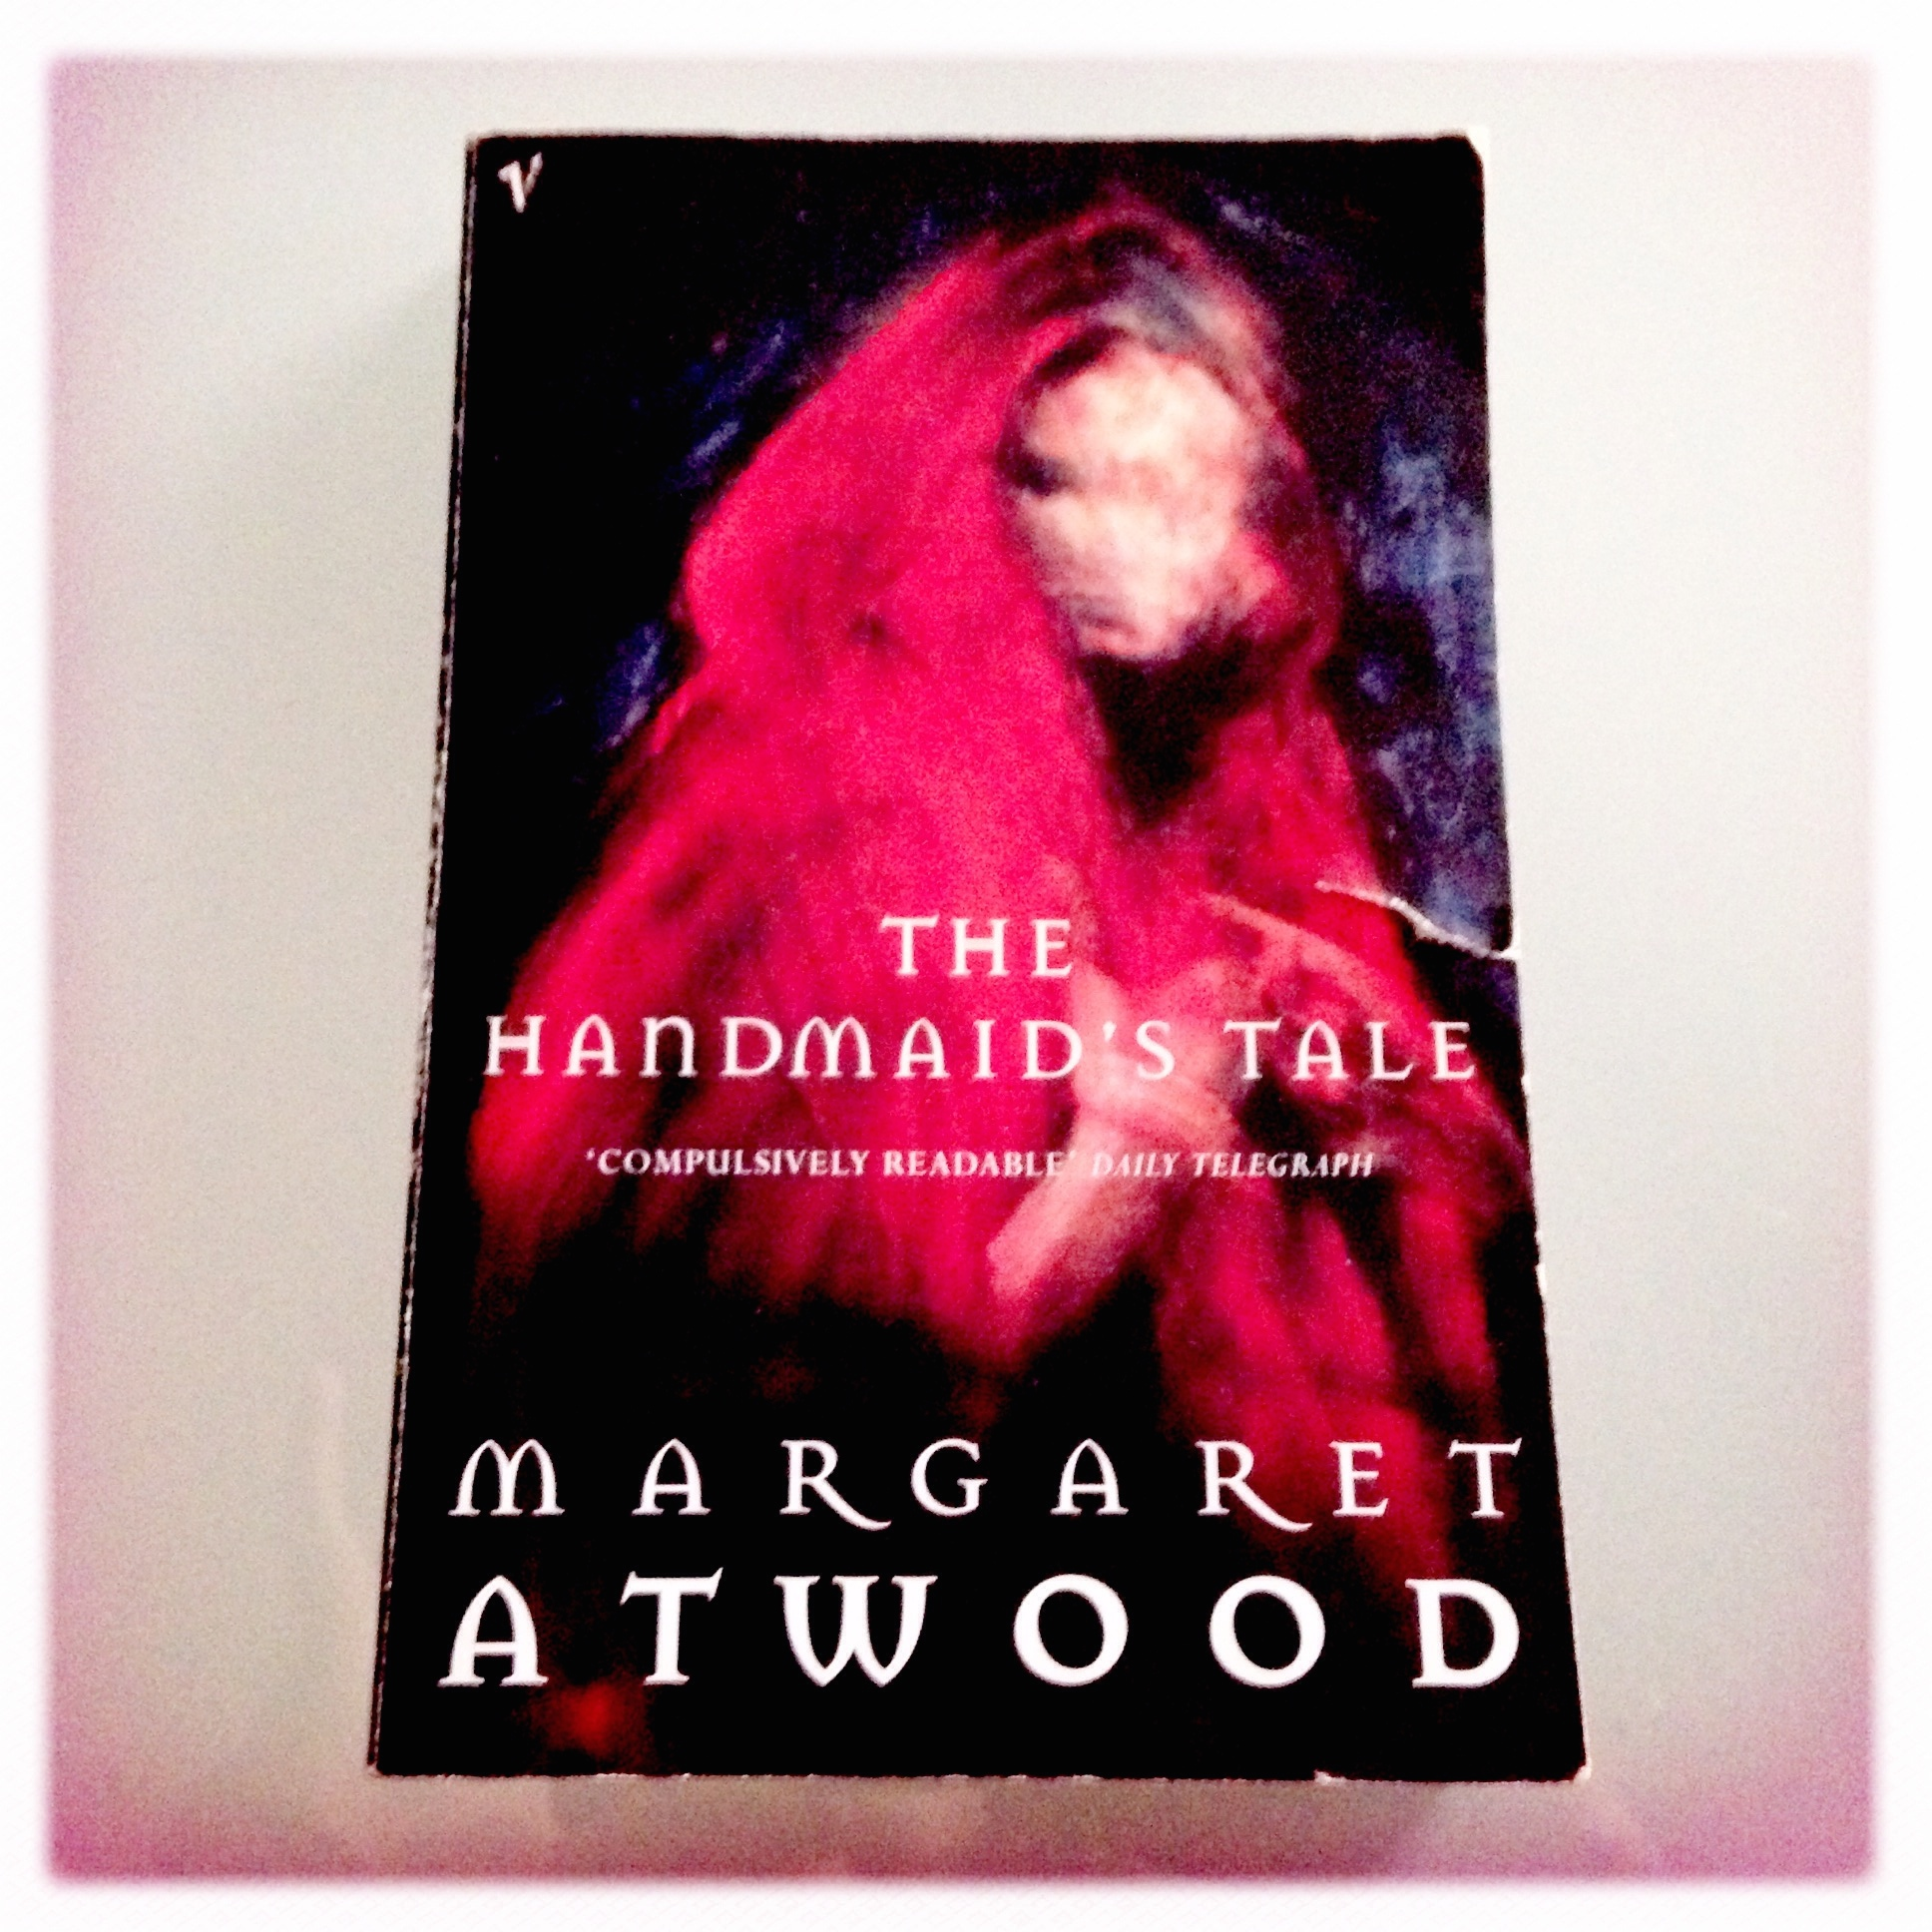 Made to read at school: Shakespeare and The Handmaid's Tale #bookadayuk